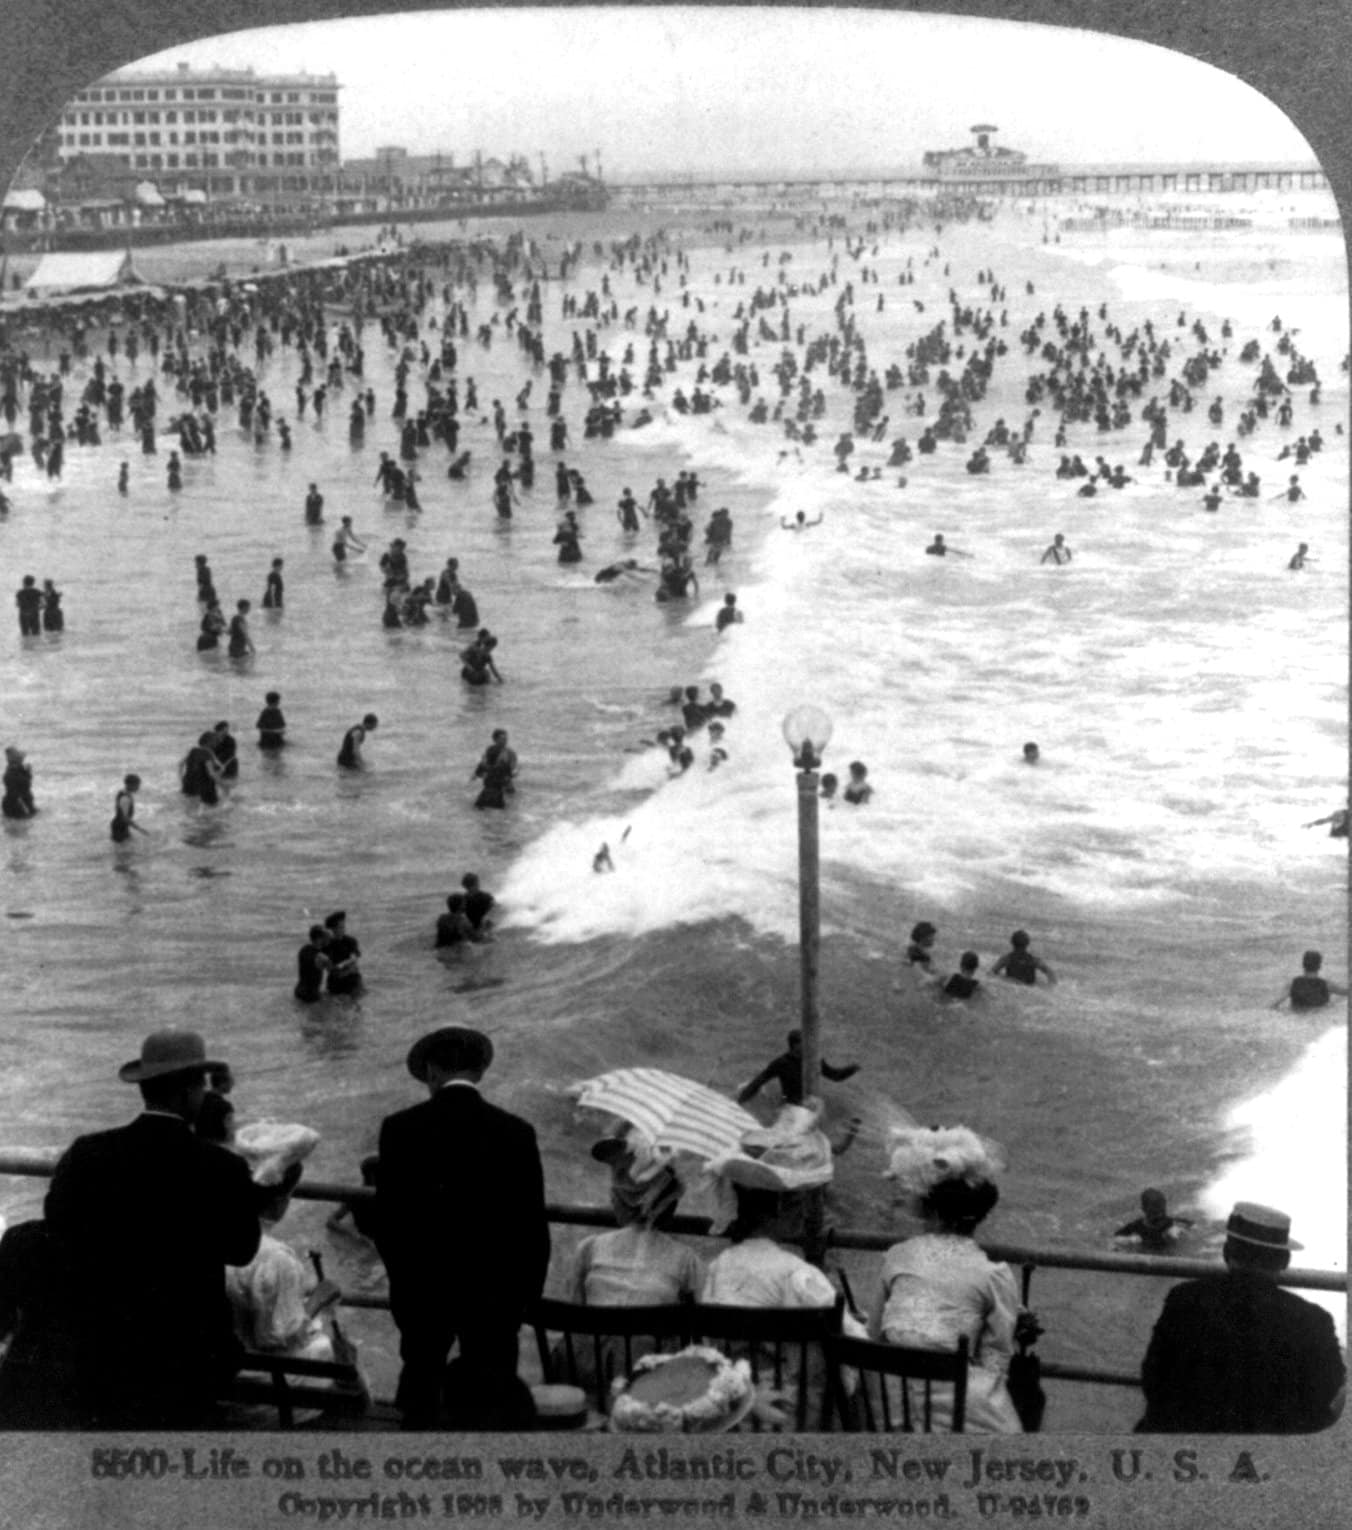 Life on the ocean wave, Atlantic City - early 1900s